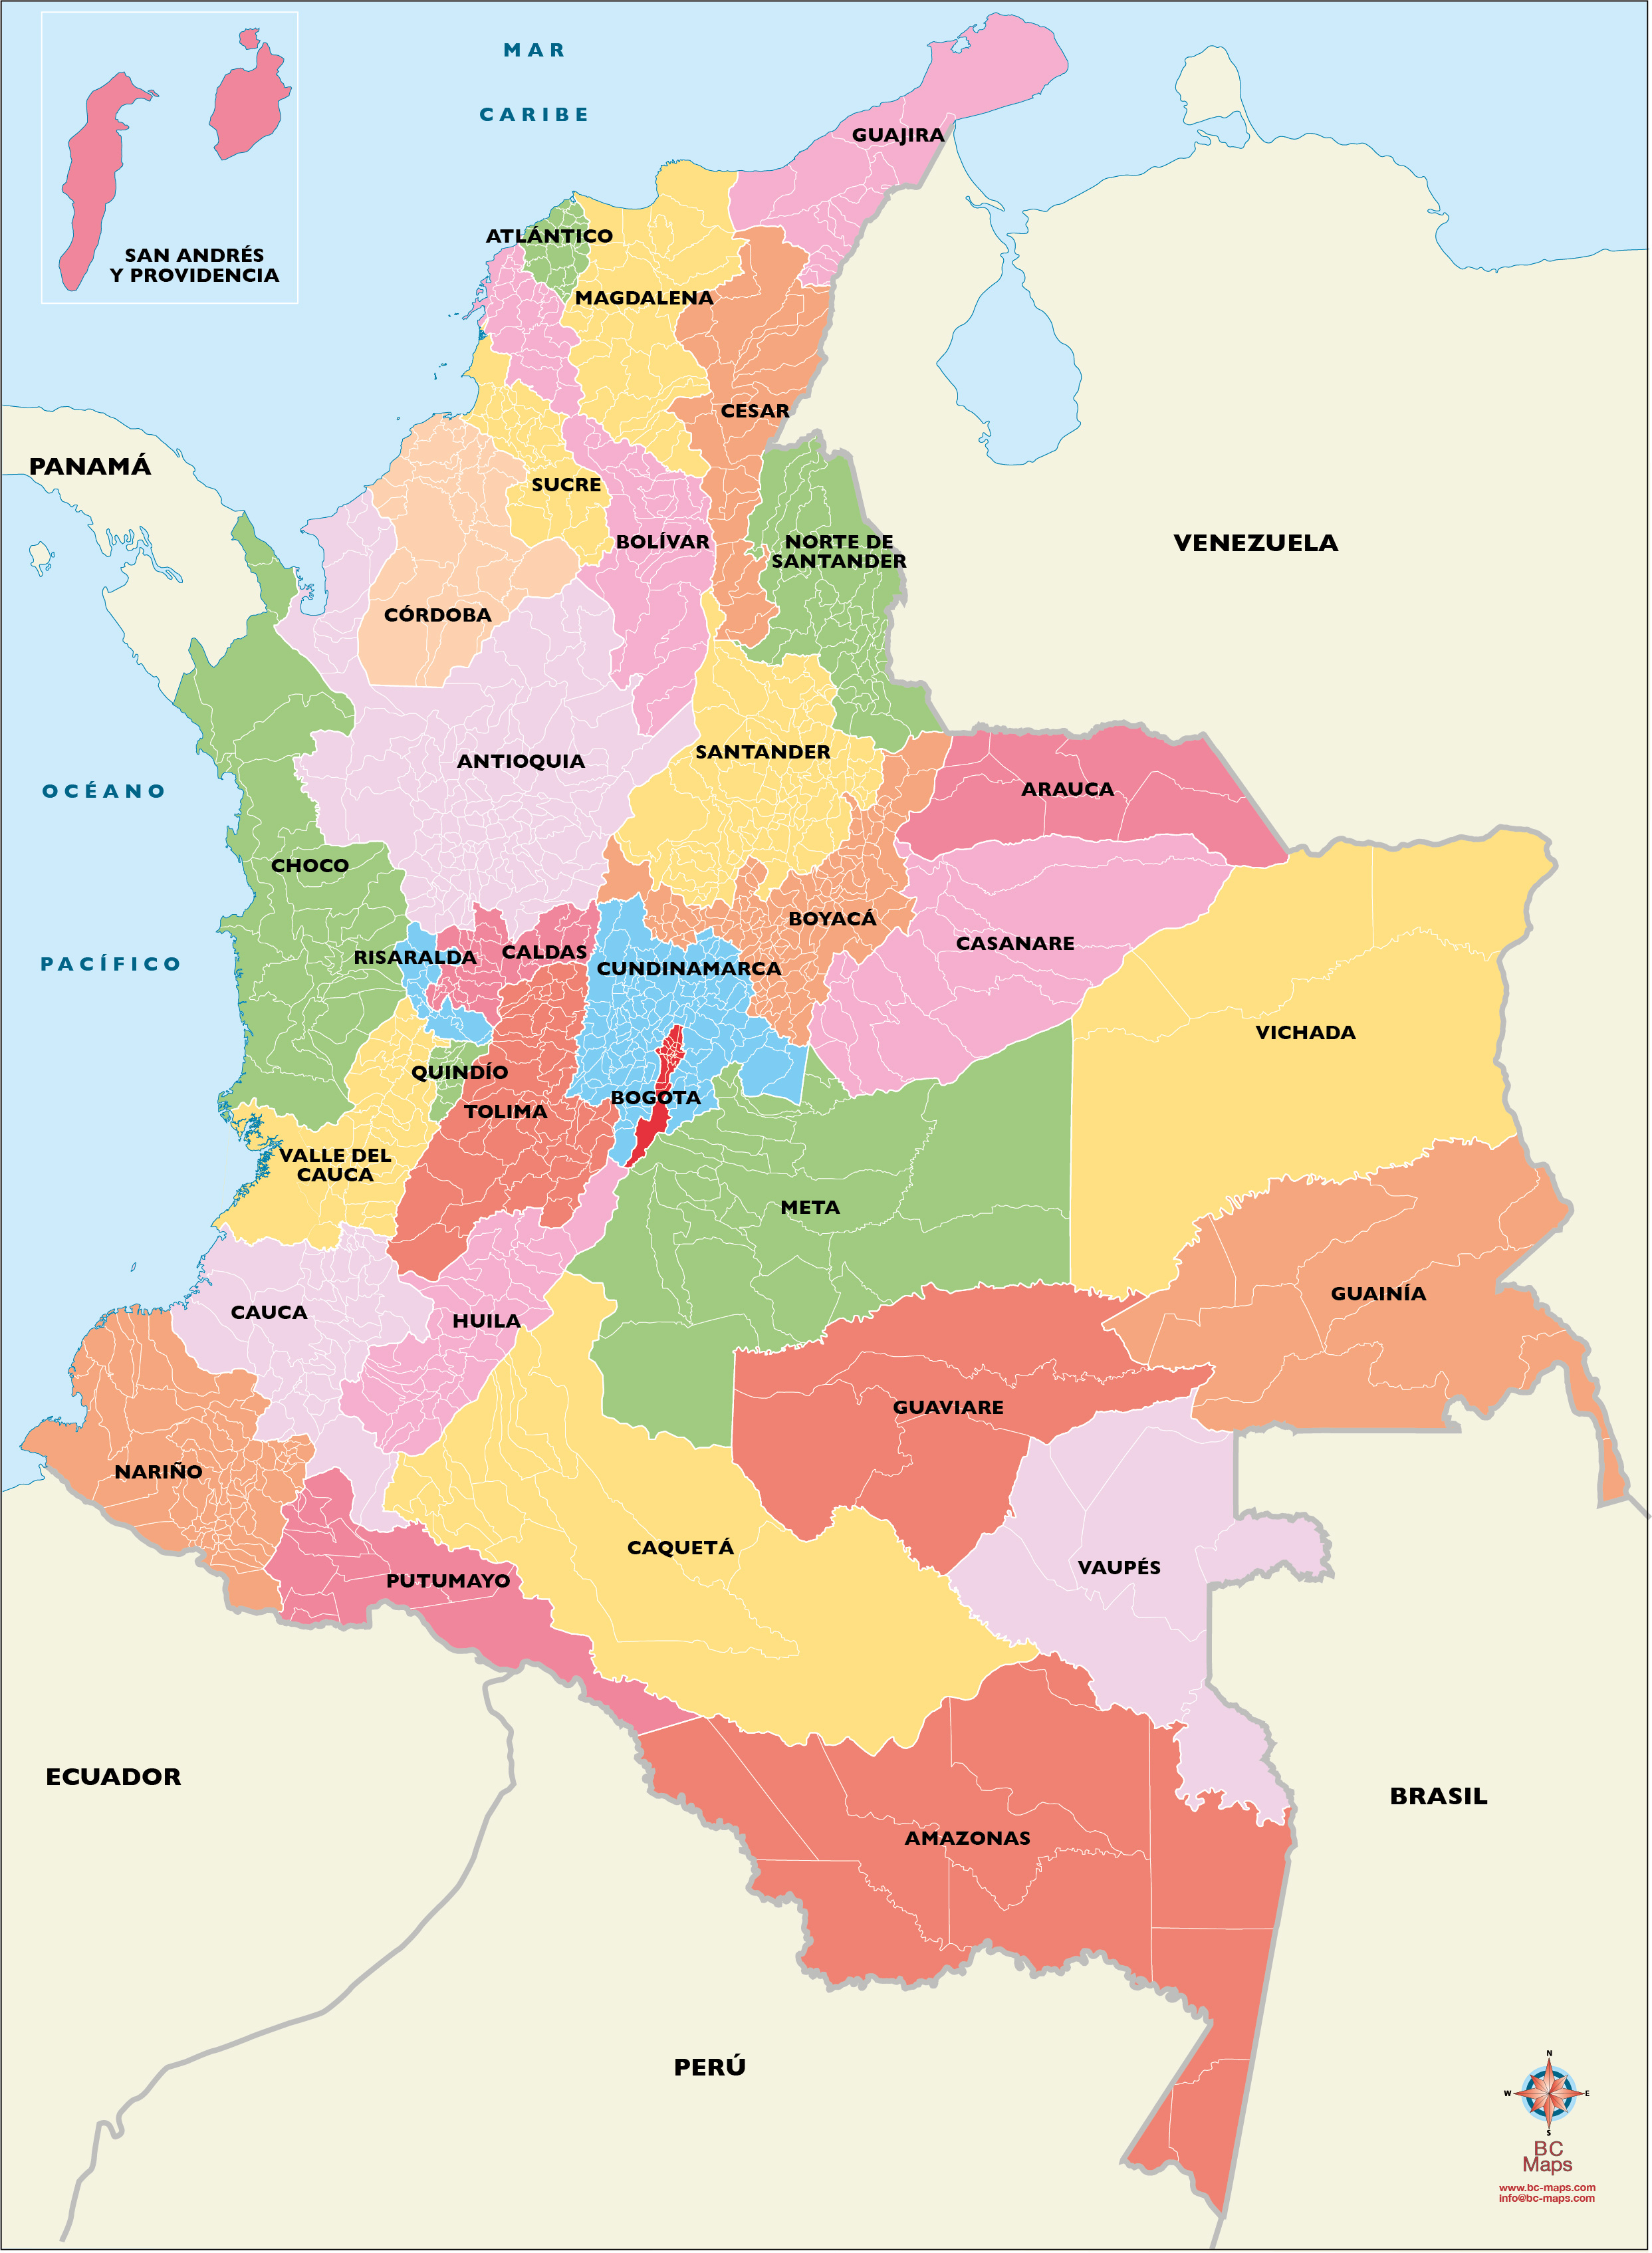 Carte vectoriel Colombia illustrant municipios